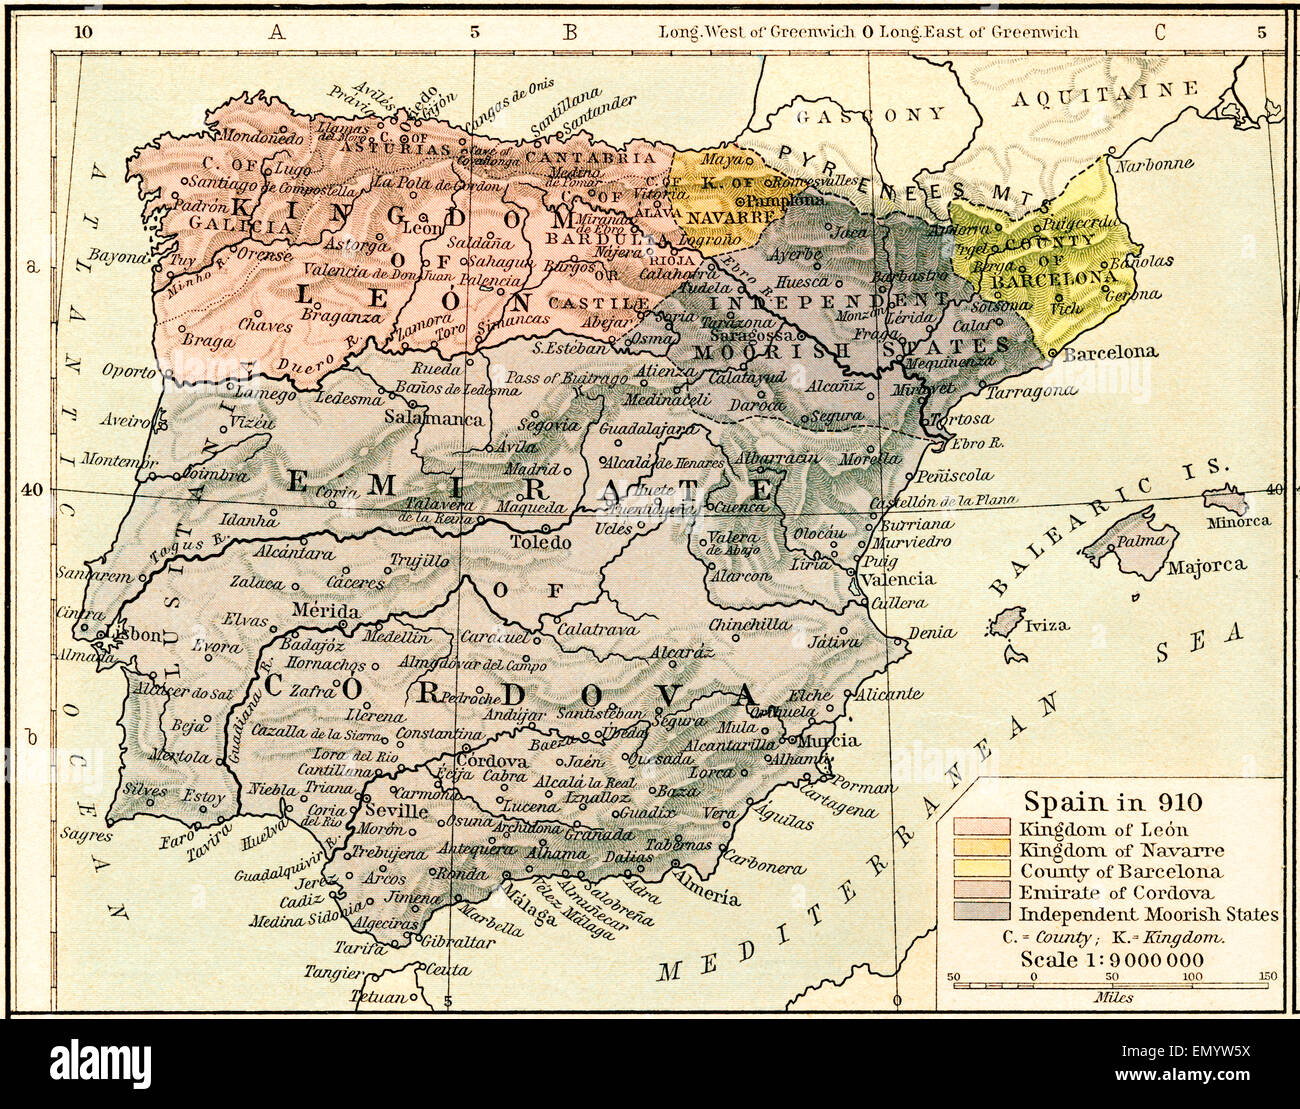 Map Of Spain With States.Map Of Spain In 910 Showing The Kingdoms Of Leon And Navarre The